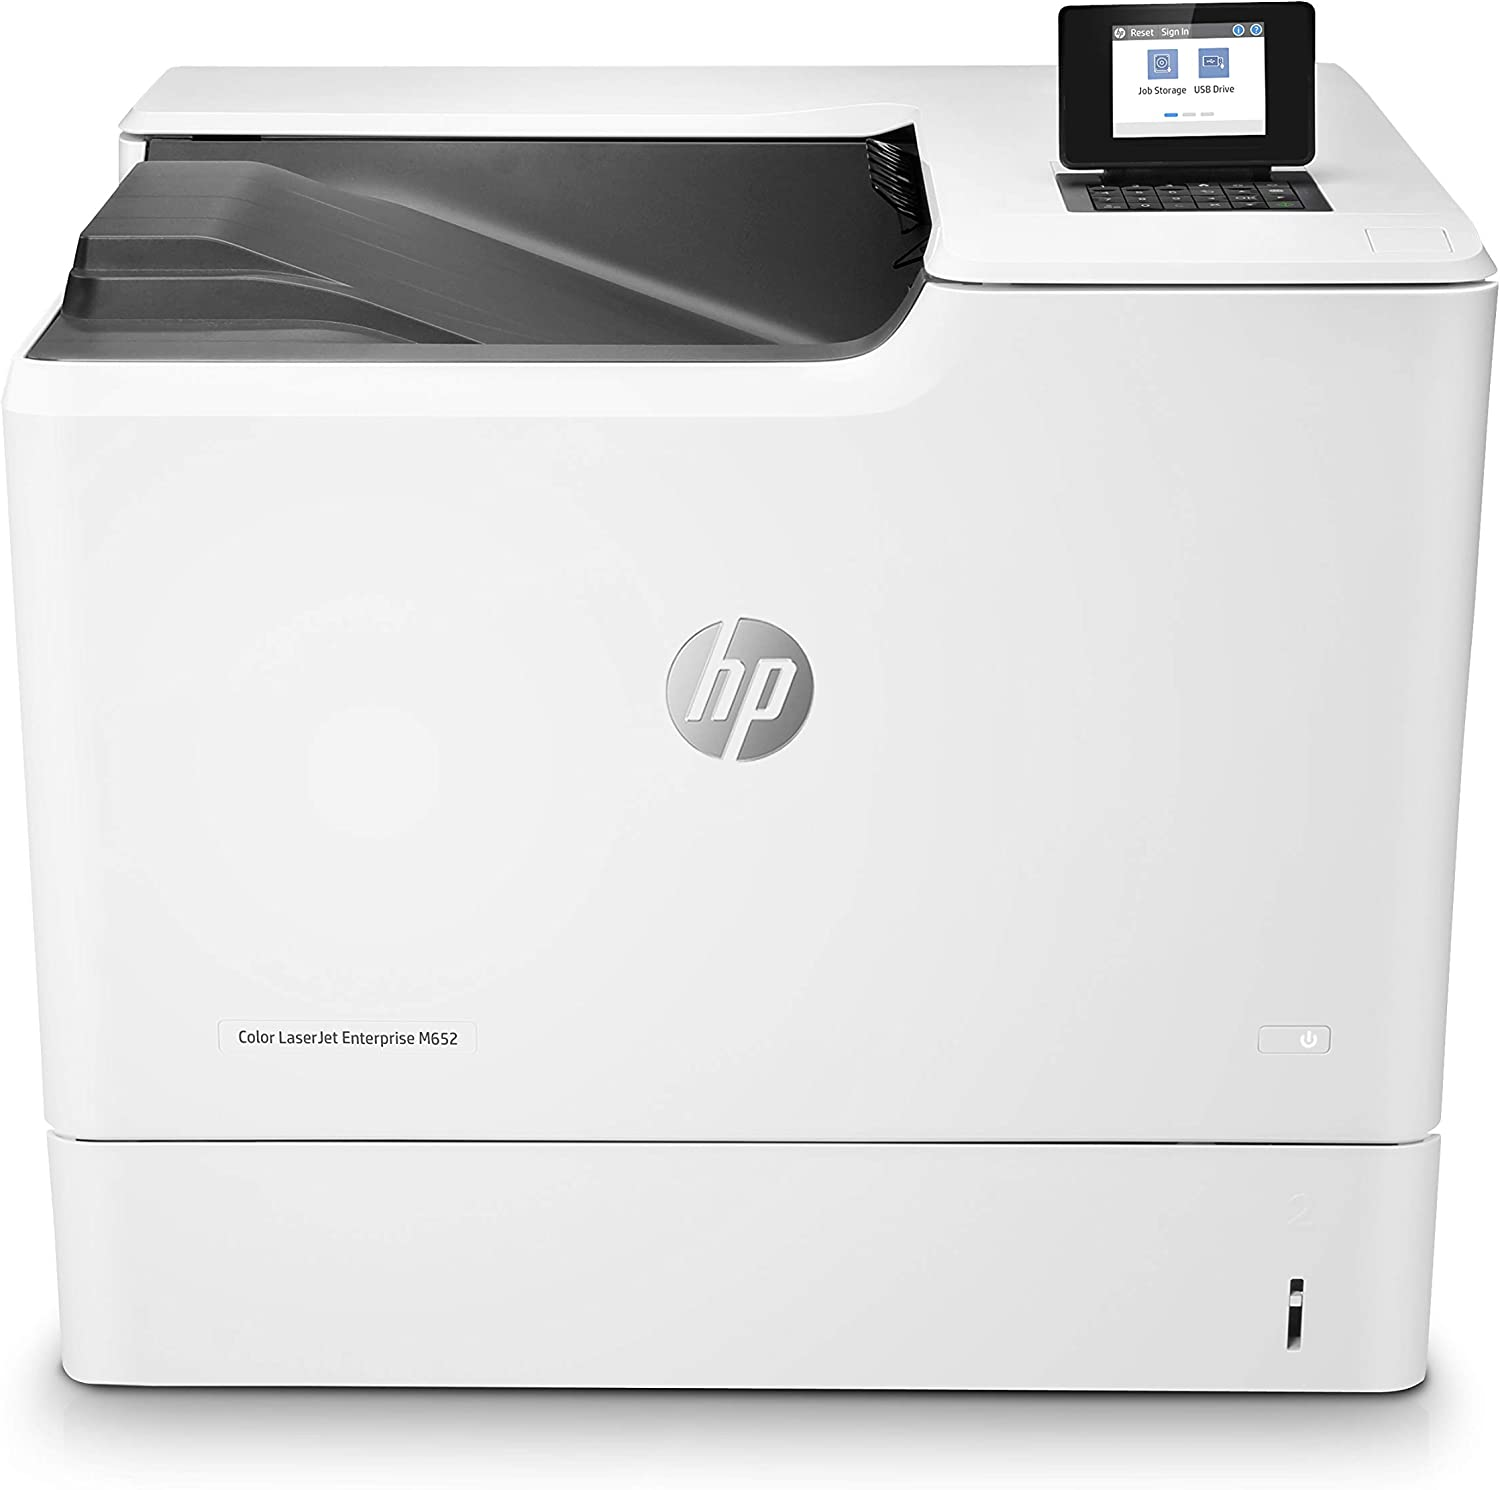 HP Color Laserjet Enterprise M652dn Duplex Printer with One-Year, Next-Business Day, Onsite Warranty (J7Z99A)